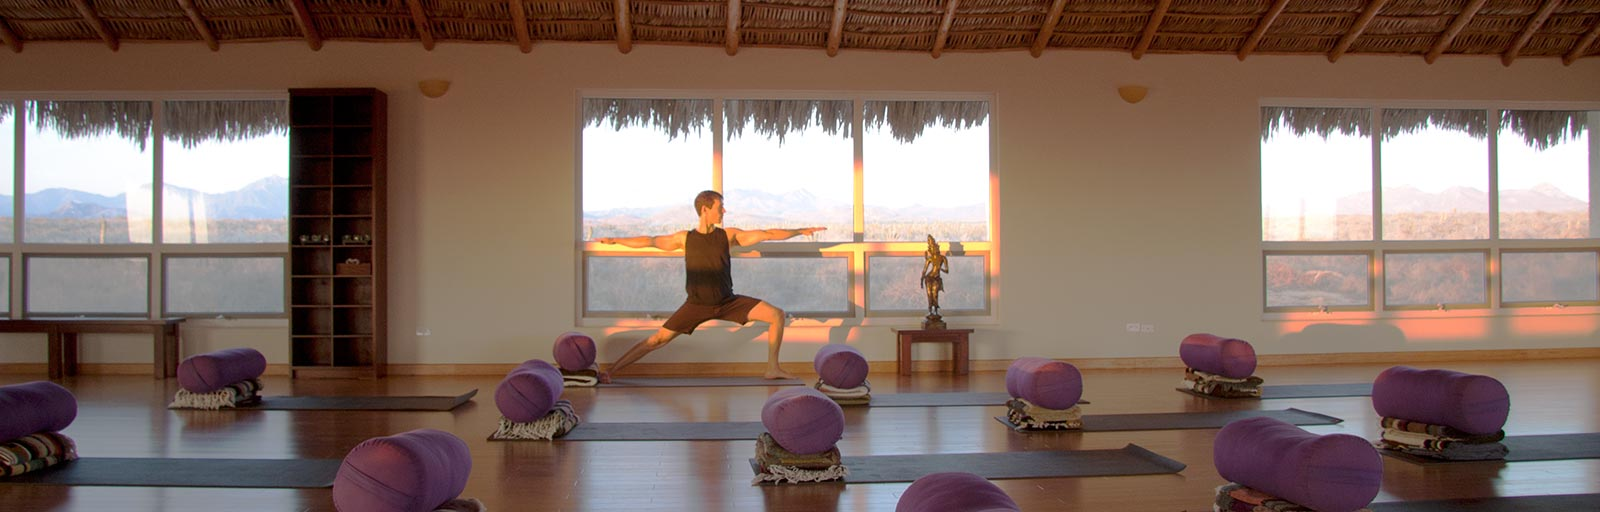 Yoga Retreat in Mexico: Warrior Pose at Sunset